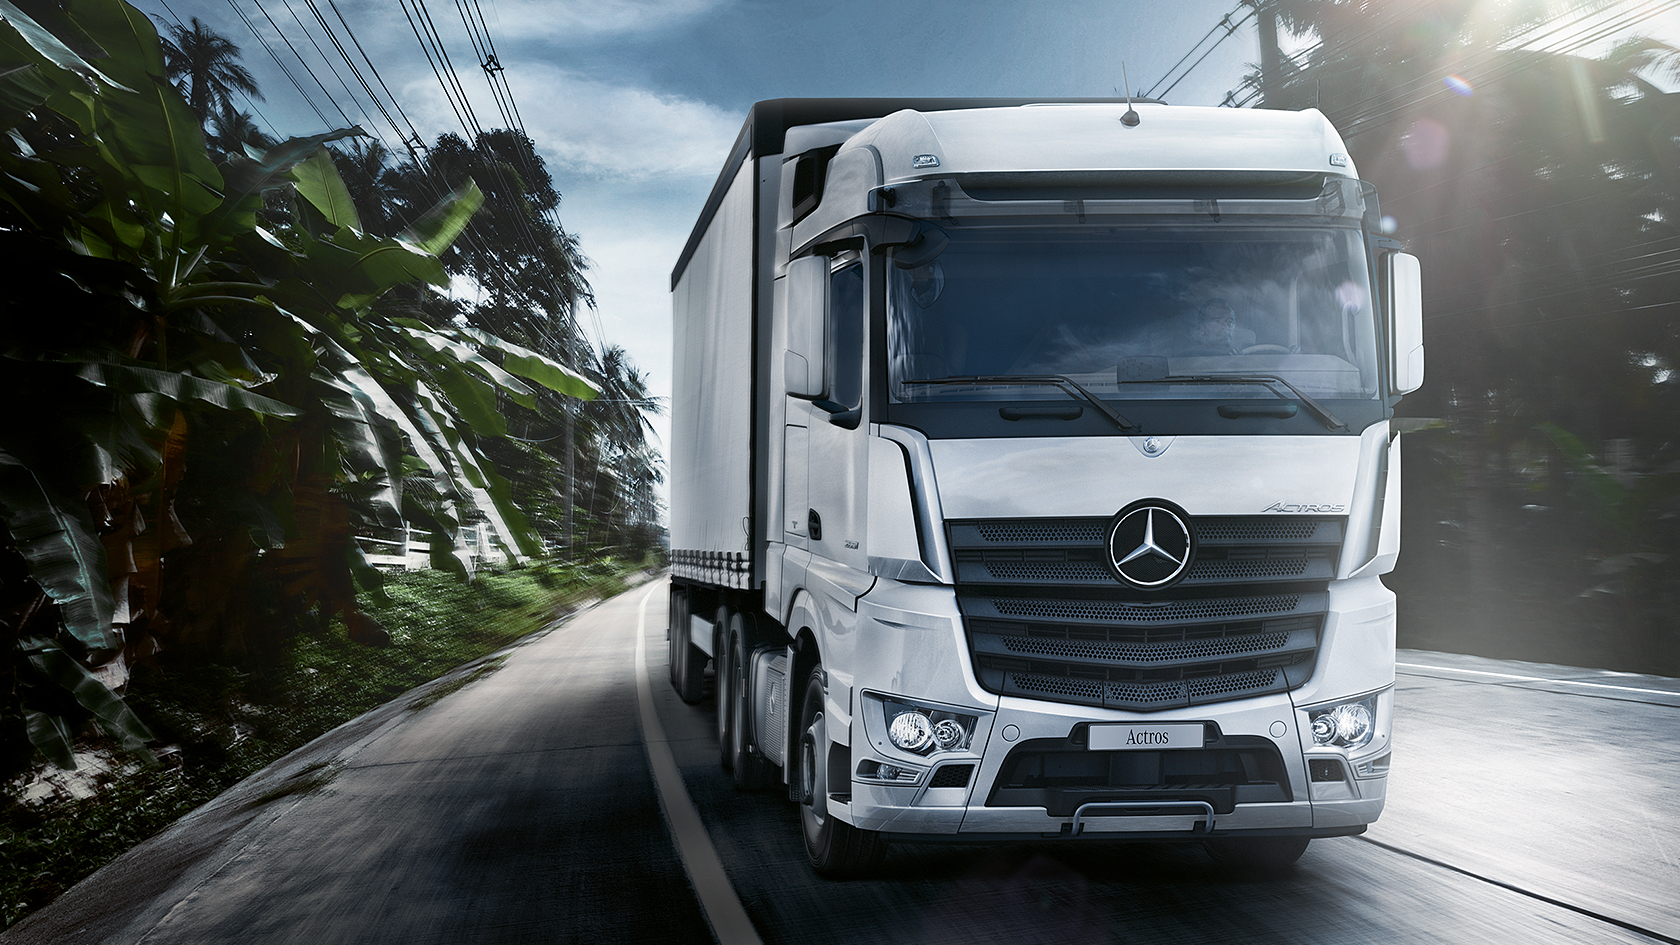 Specifications of trucks